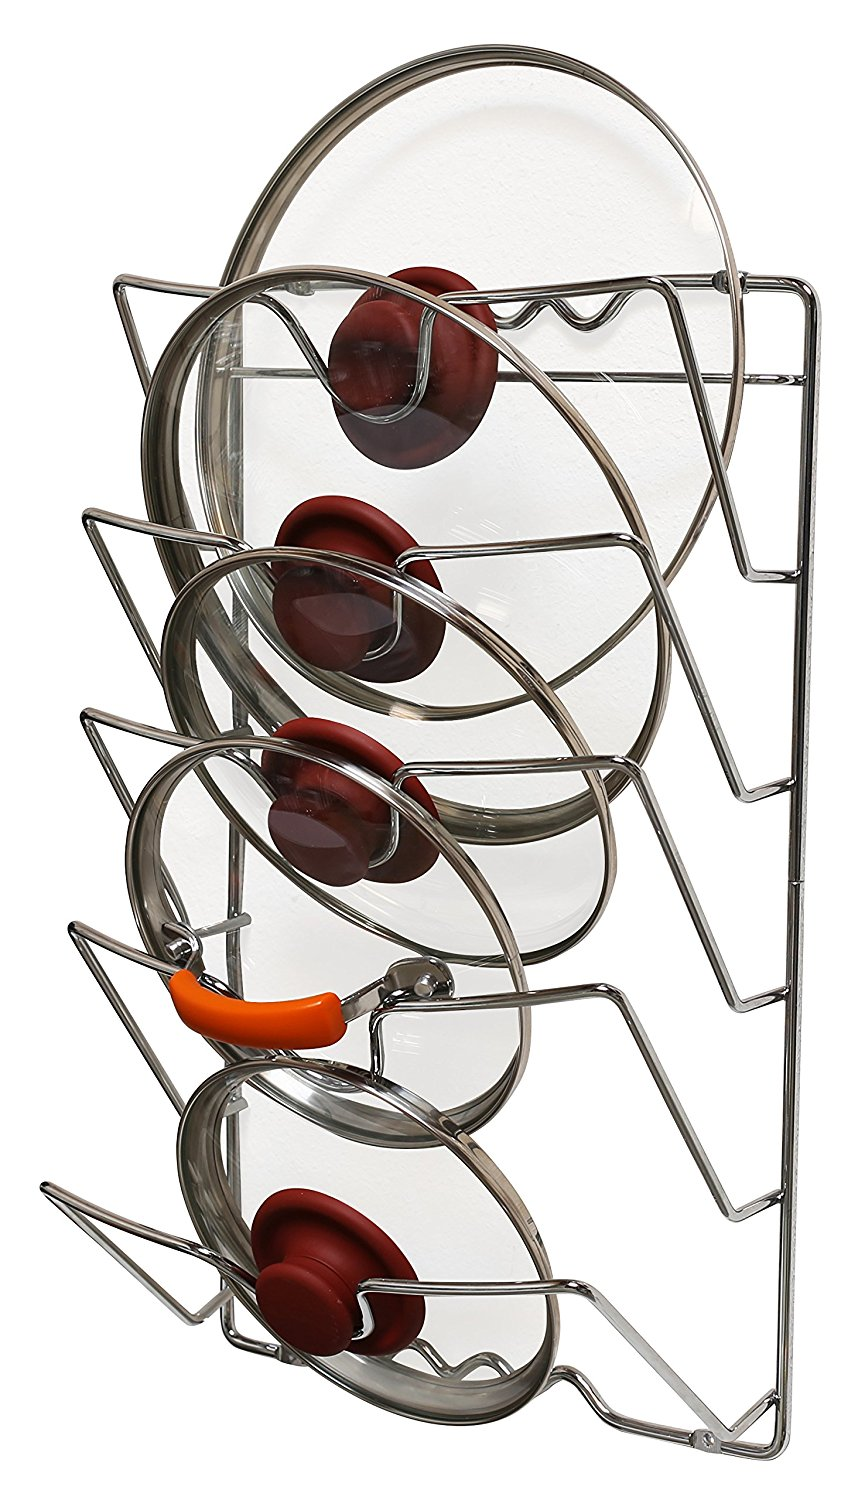 decoBros pot lid rack